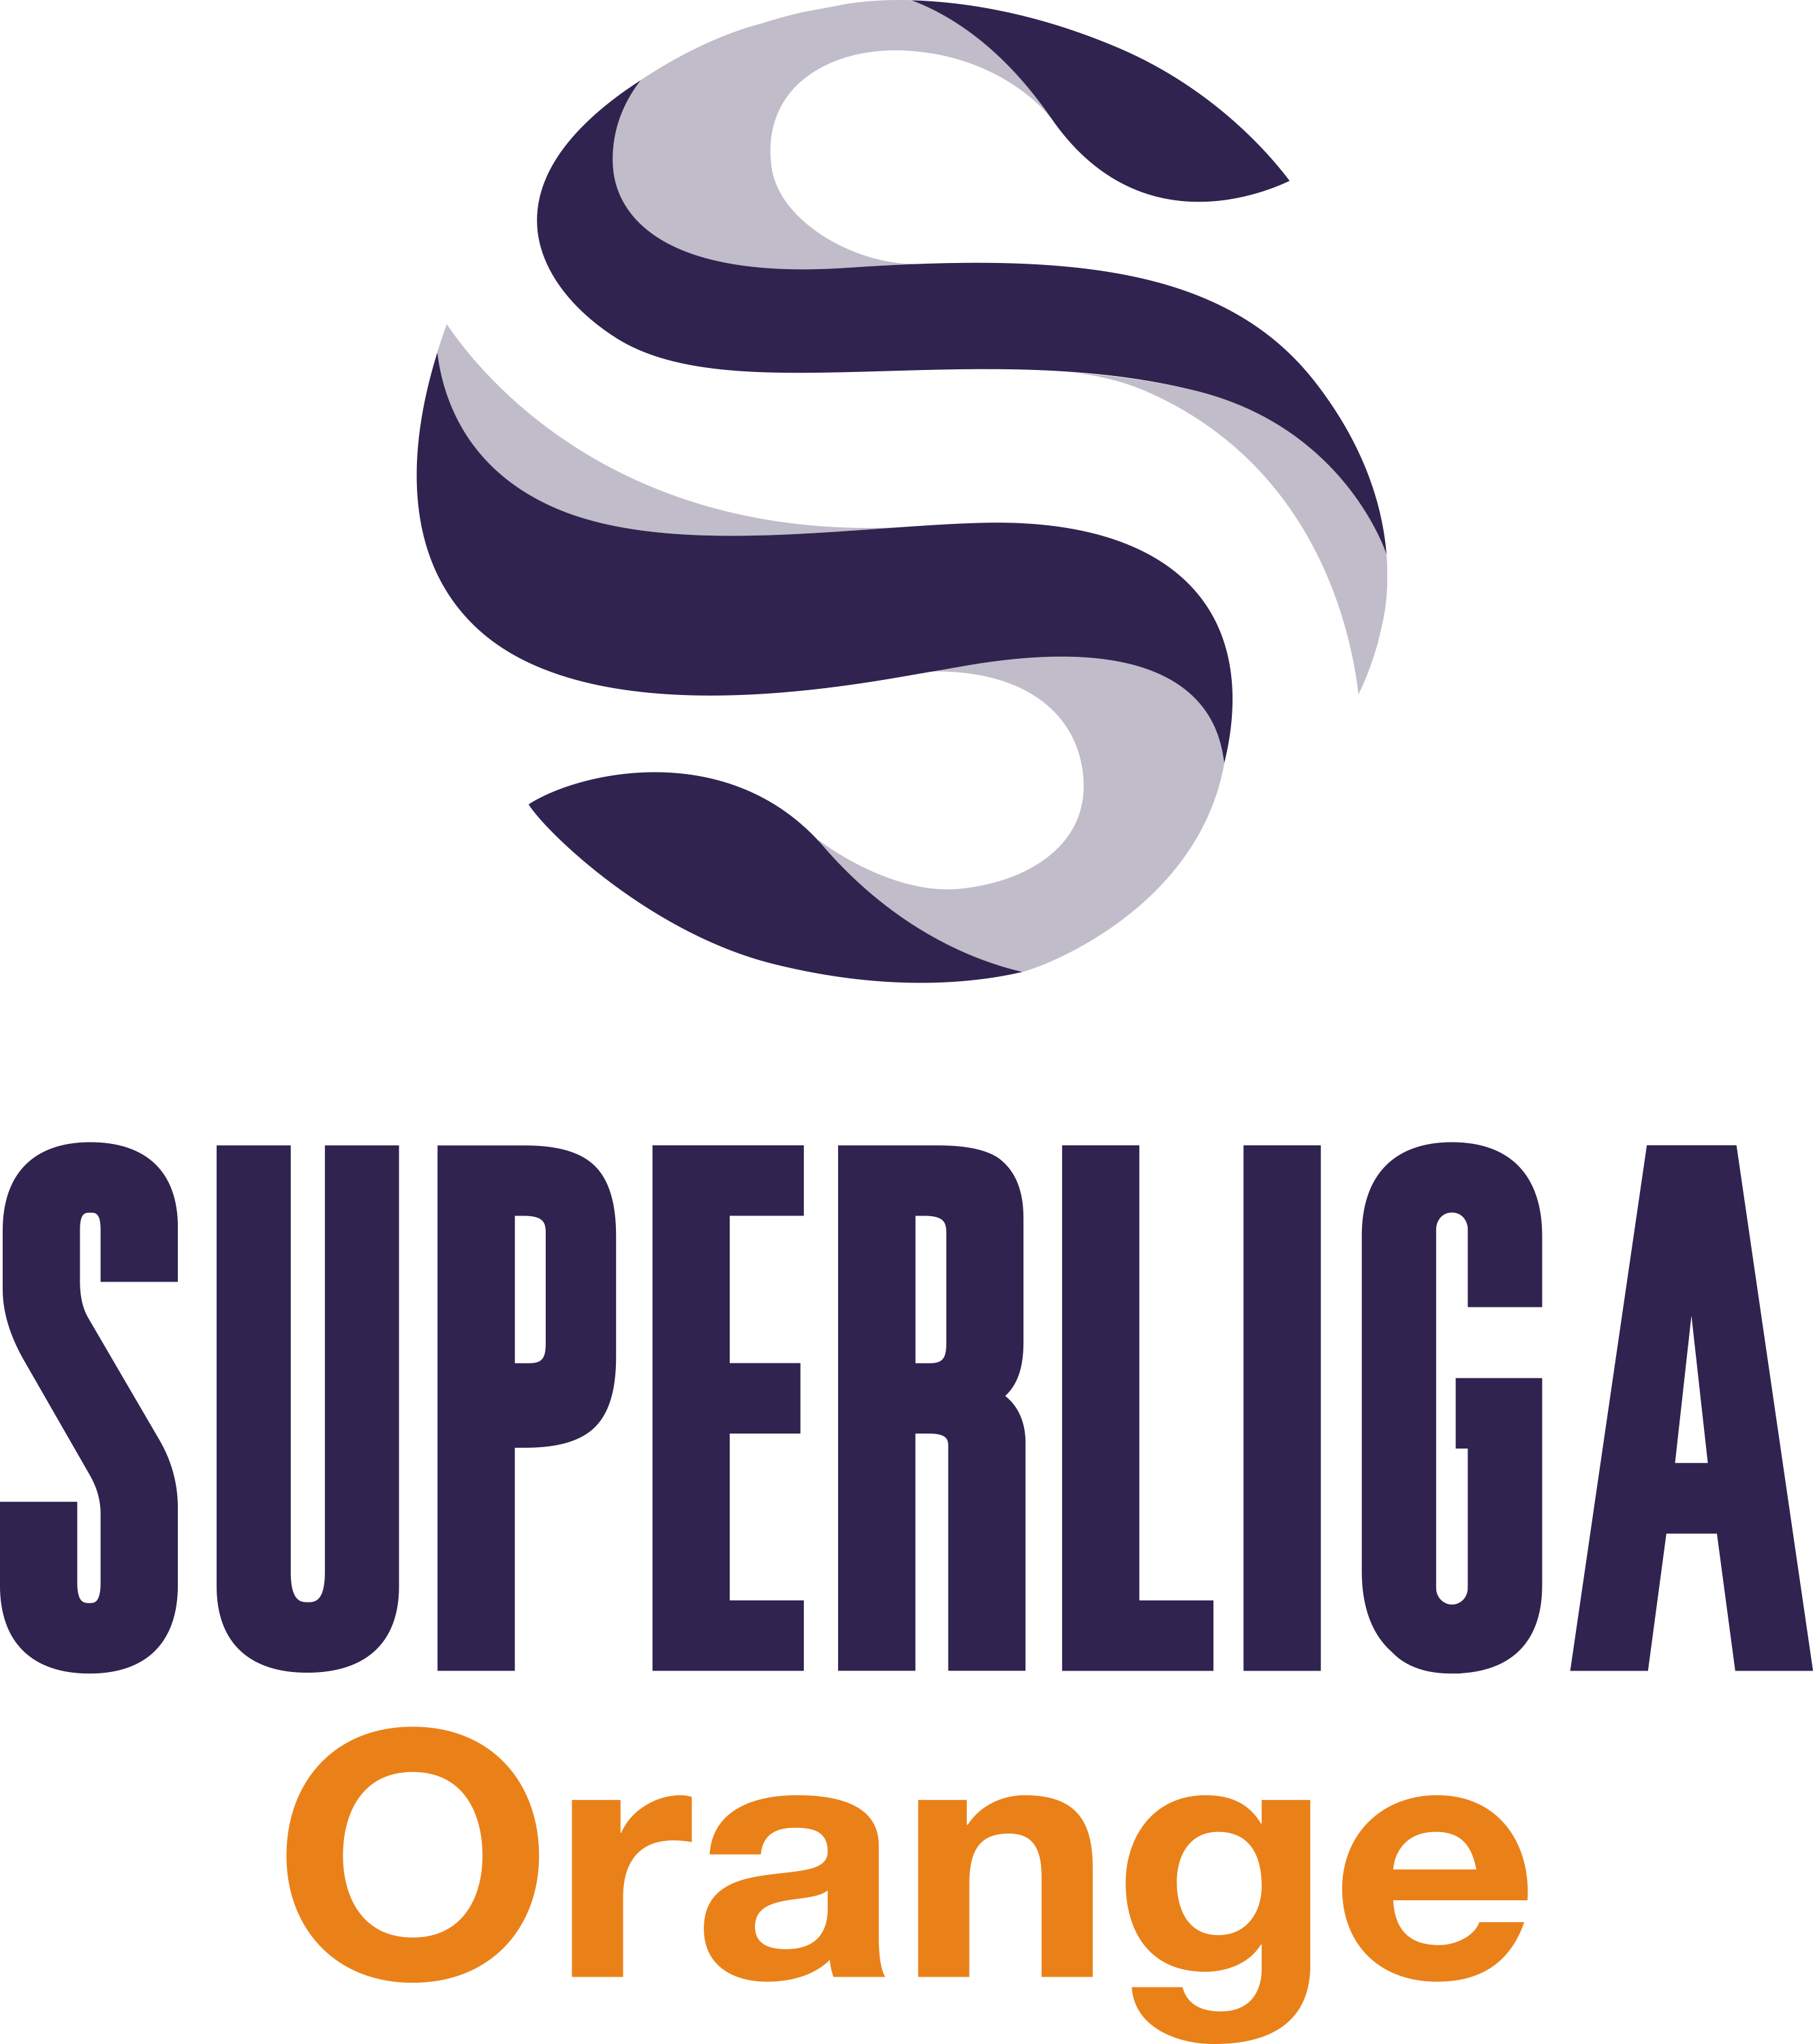 LVP SuperLiga Orange Spring 2020 Tournament